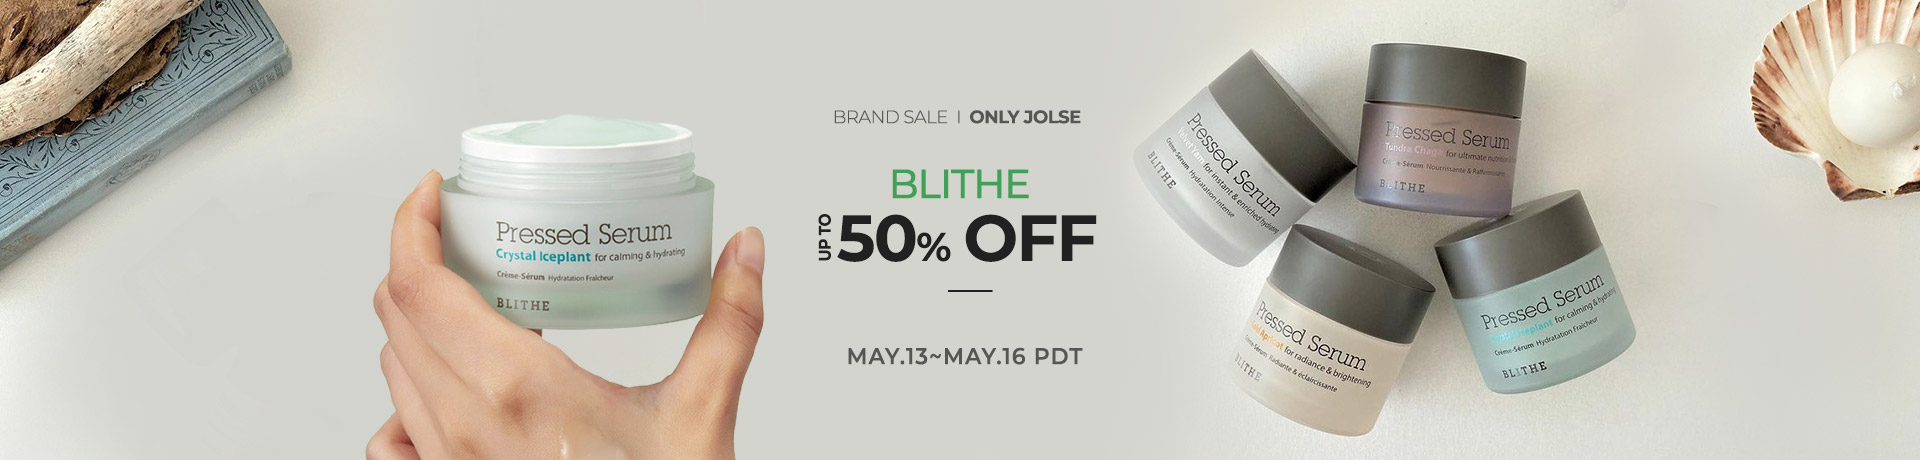 BLITHE Up to 50% OFF